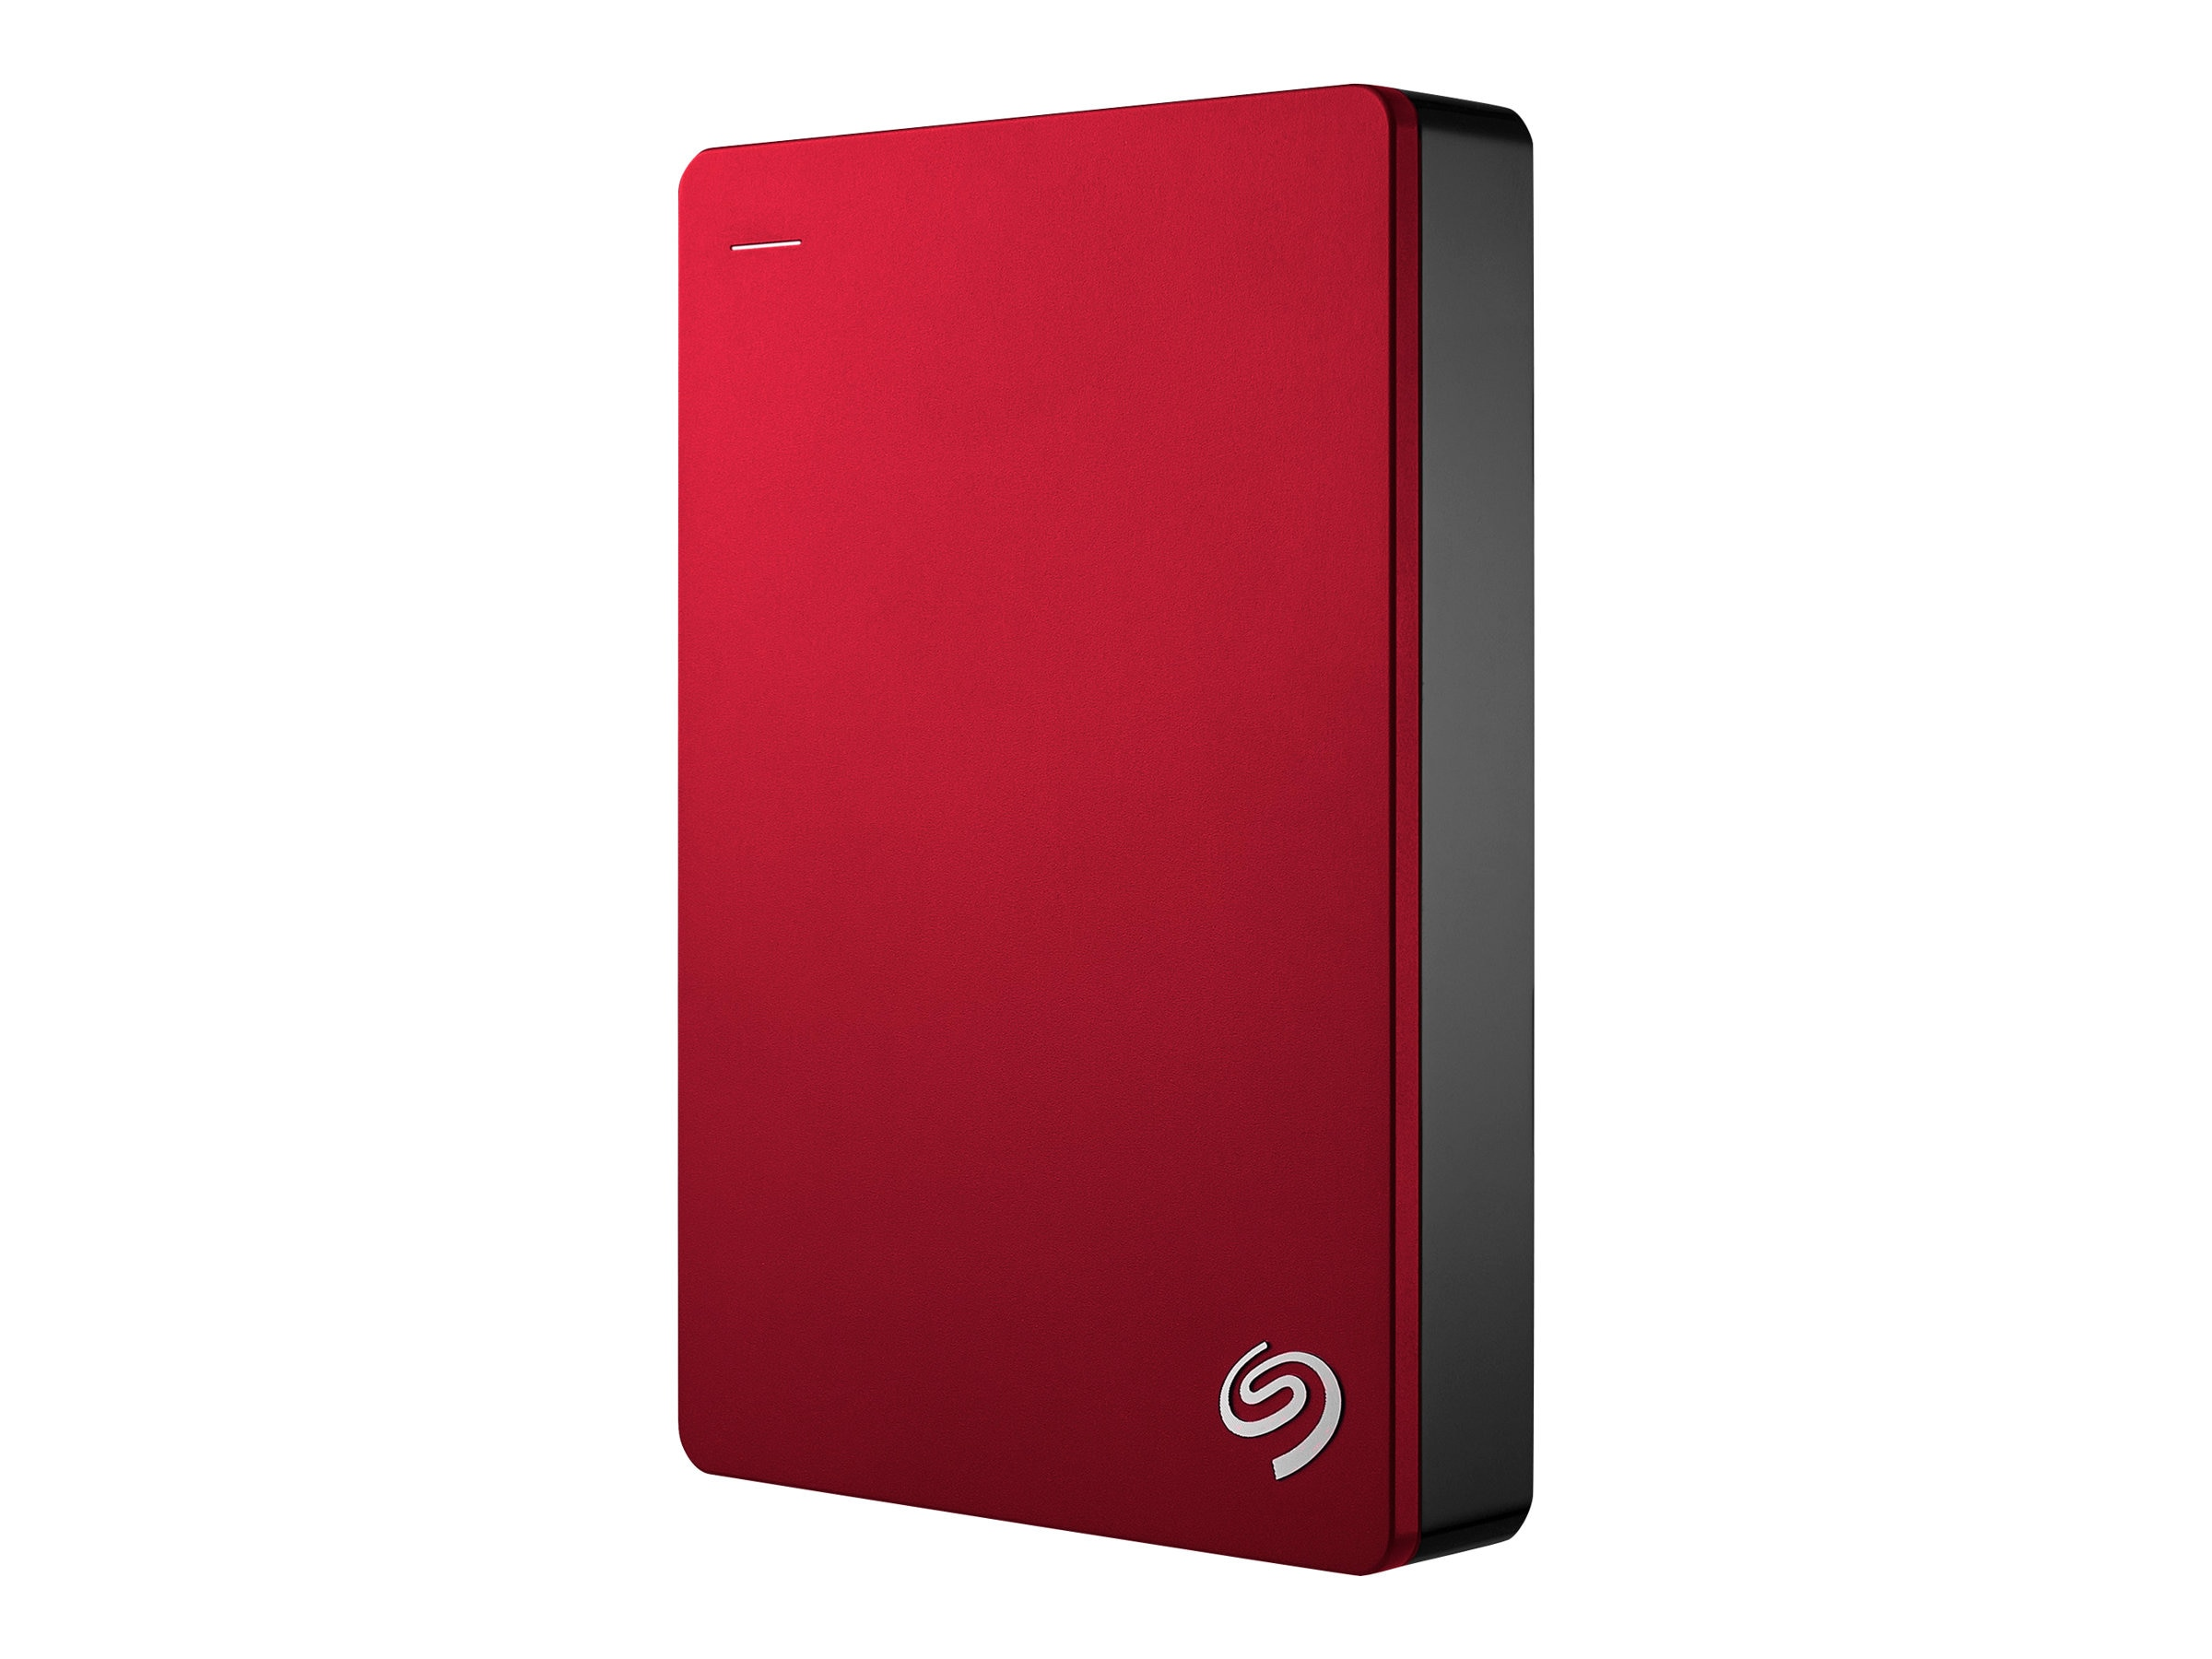 Seagate 4TB Backup Plus USB 3.0 Portable Hard Drive - Red, STDR4000902